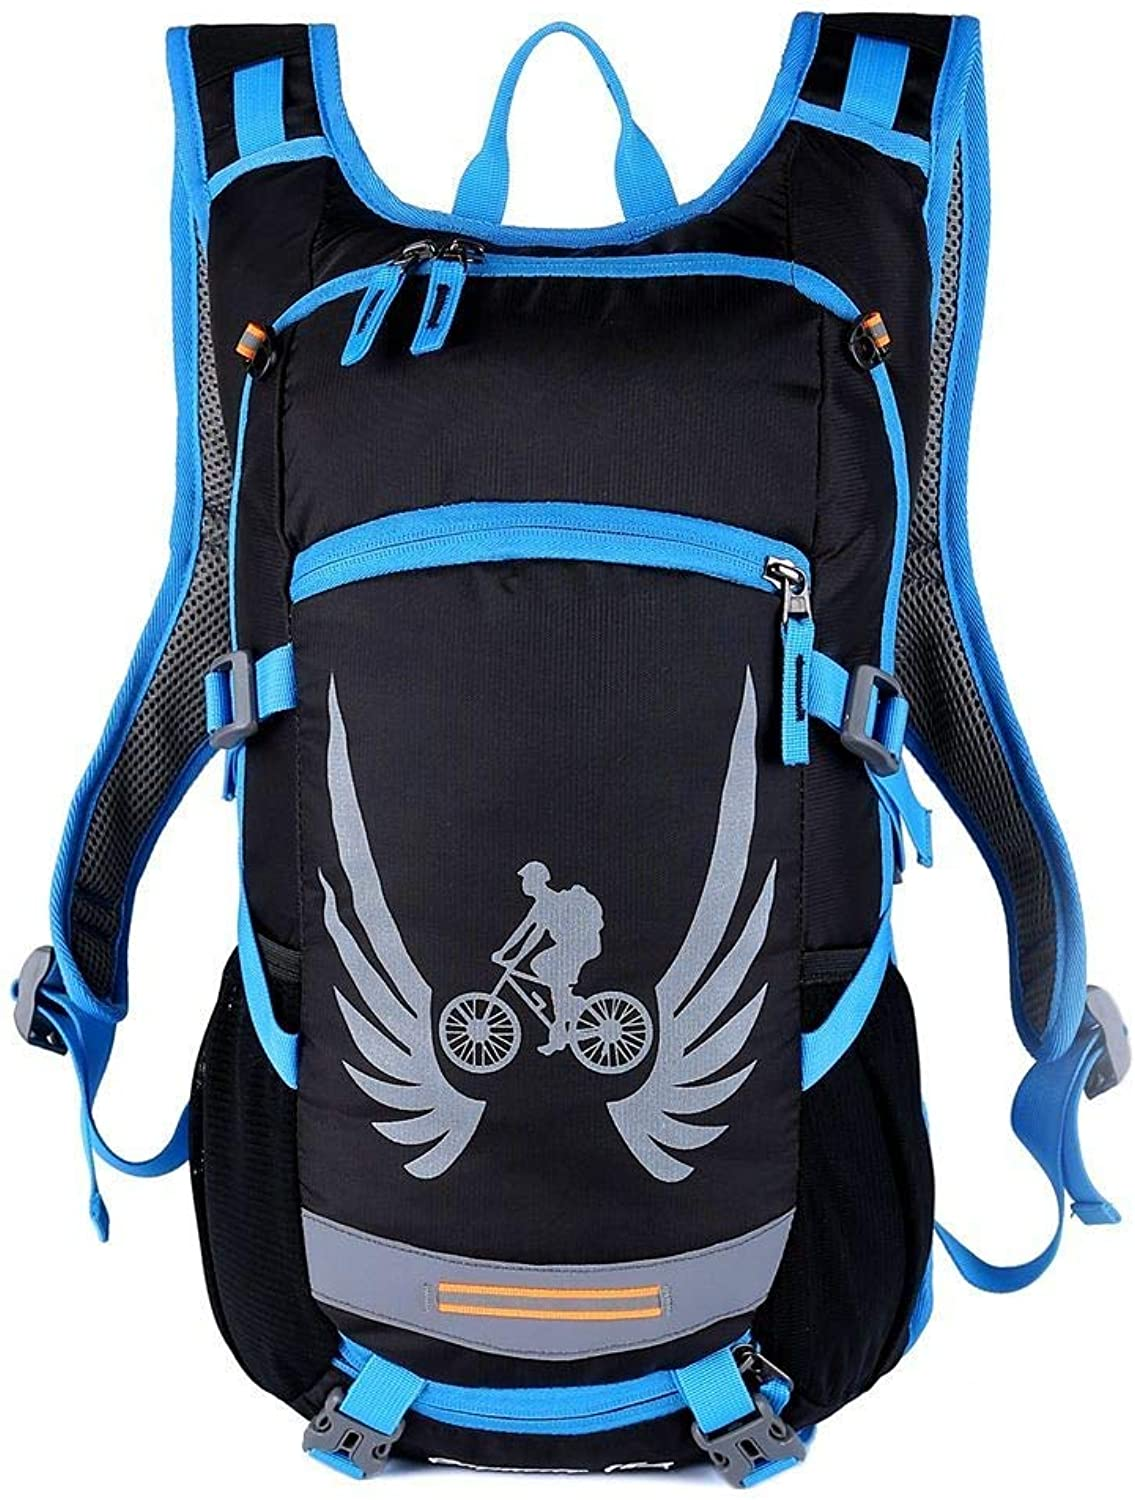 DYR Outdoor Backpack Men and Women Riding Bag Sports Bag MultiFunction Water Bag Hiking OffRoad Bag Can Be Wholesale, bluee